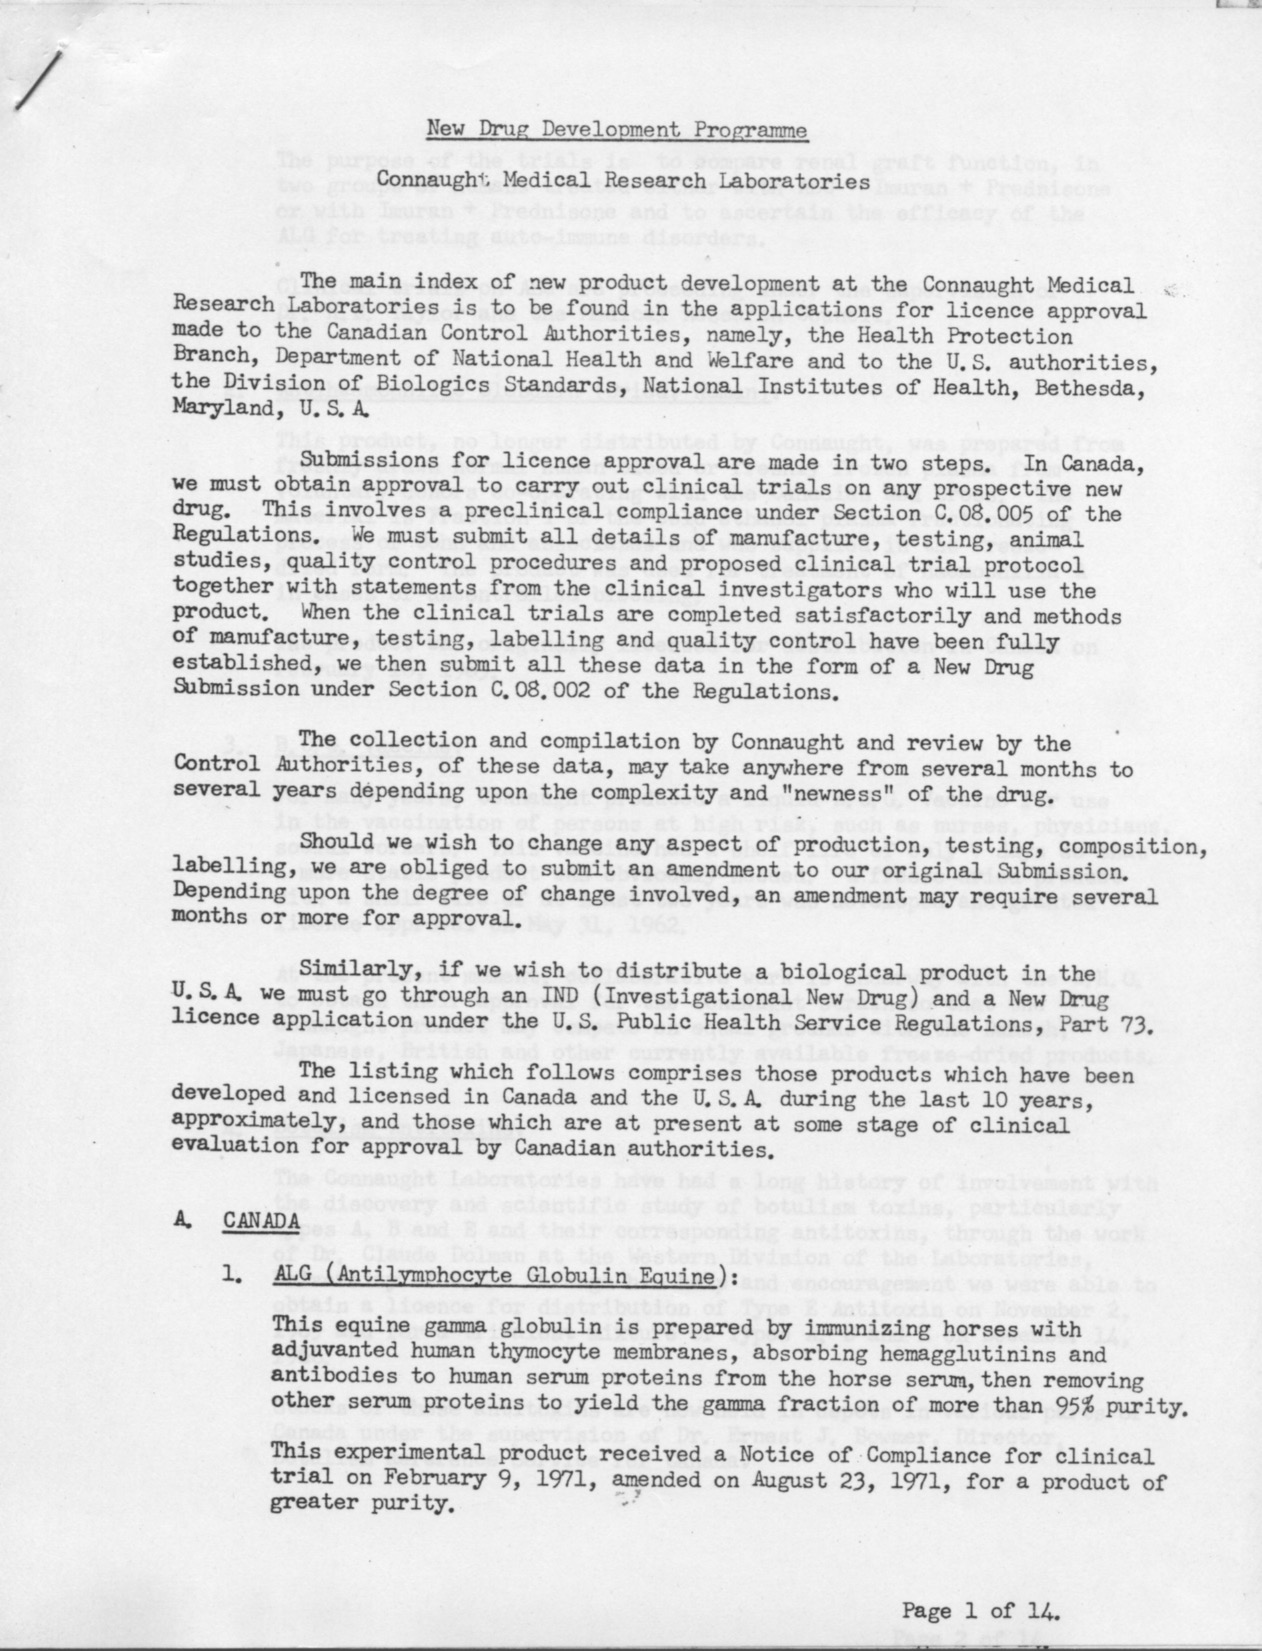 "First page of a Connaught Laboratories report, dated March 16, 1972, prepared by J.C.W. Weber and W.R. Ashford, entitled ""New Drug Development Programme,"" which describes the broad range of vaccines and other biological health products produced by, or in development at Connaught. Full document available at: http://healthheritageresearch.com/clients/docs/UTCF/Article-12/Weber-Ashford-CMRL-NewDrugDevelopmentProgram-1972-03-16-SPCA-CLLgeneral1971-73-Box29.pdf"